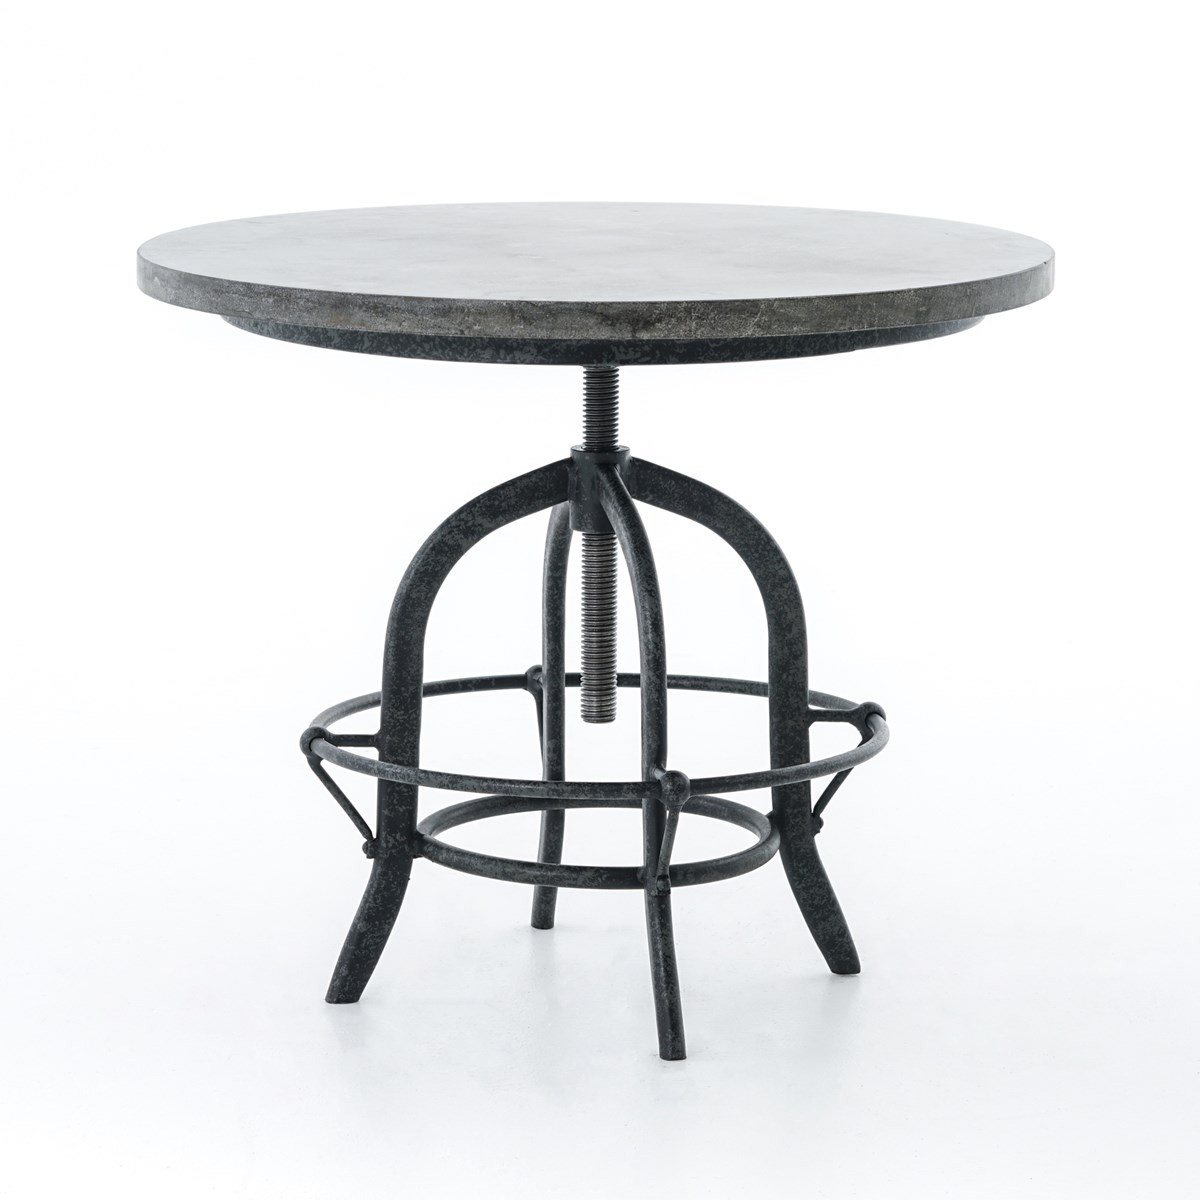 Coffee Table With Bluestone Top: French Industrial Bluestone Top Round Crank End Table